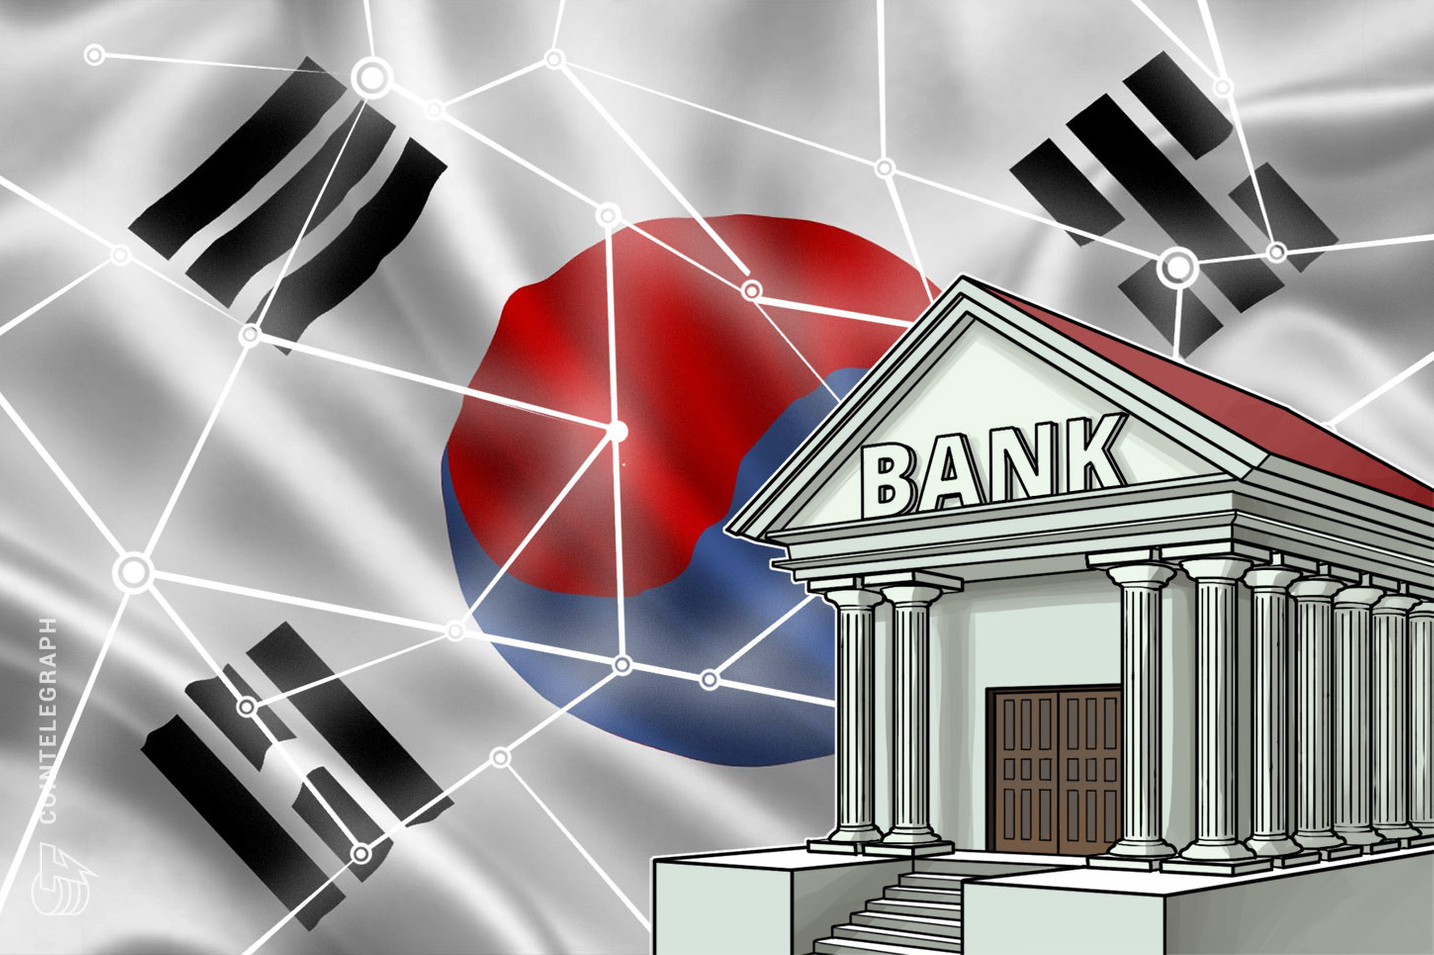 South Korean Banking Group to Launch Blockchain-Powered ID Verification Platform